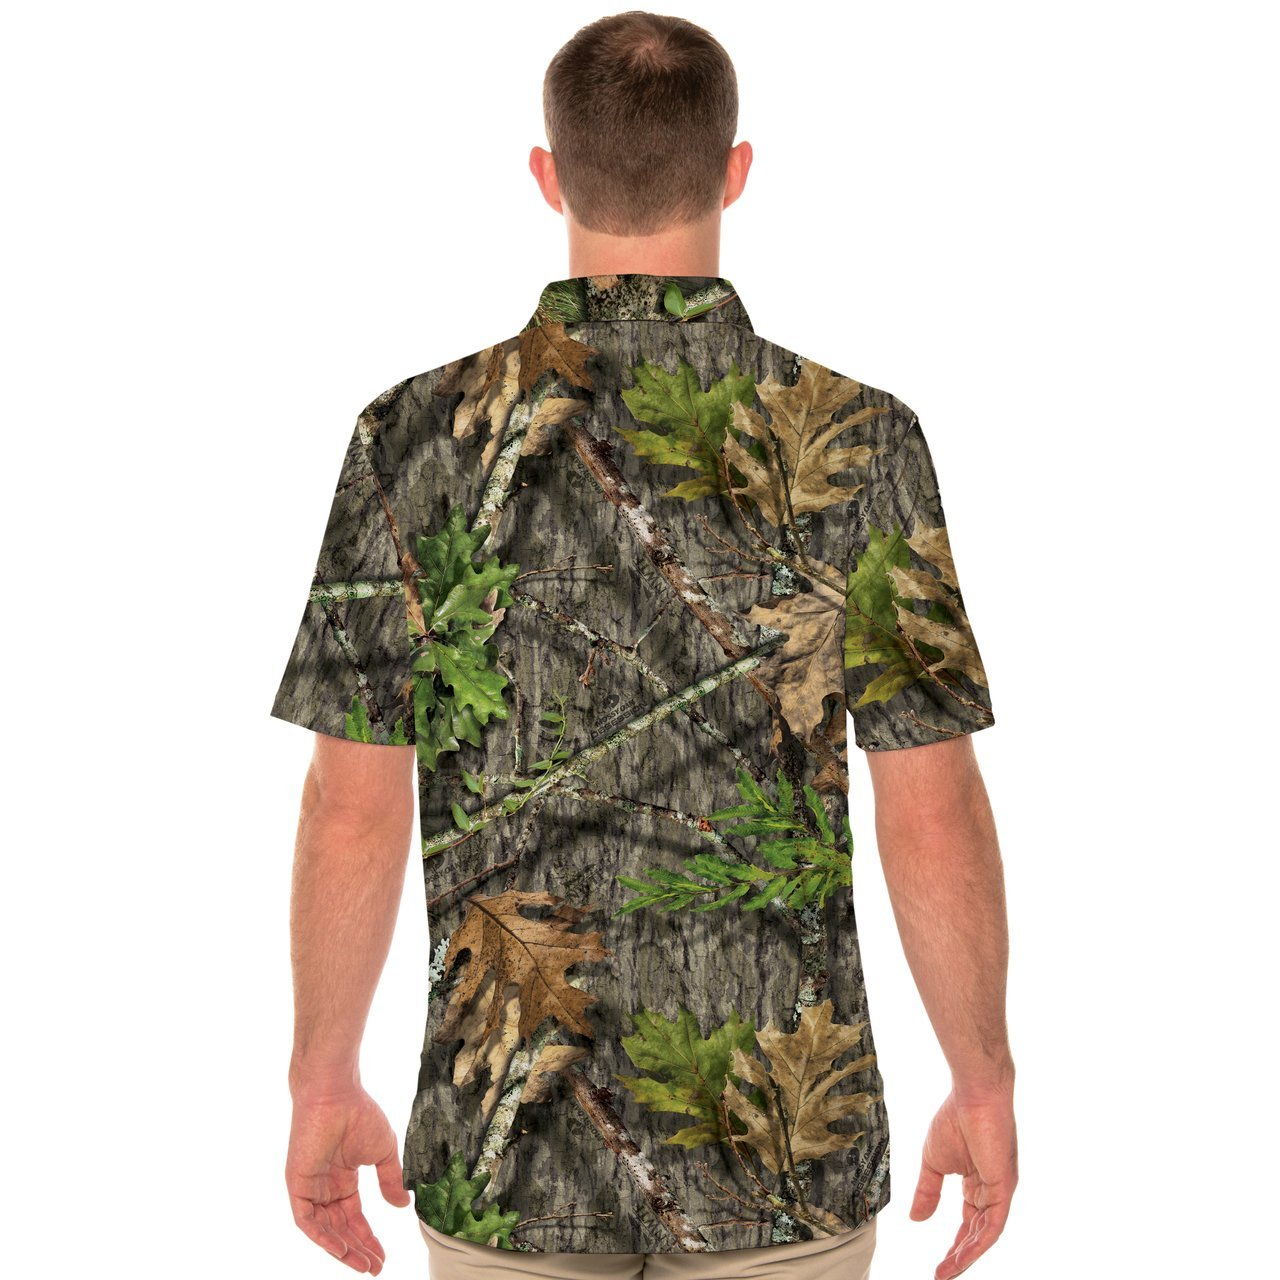 M900M15 Solar Polo Short Sleeve - Mossy Oak Obsession